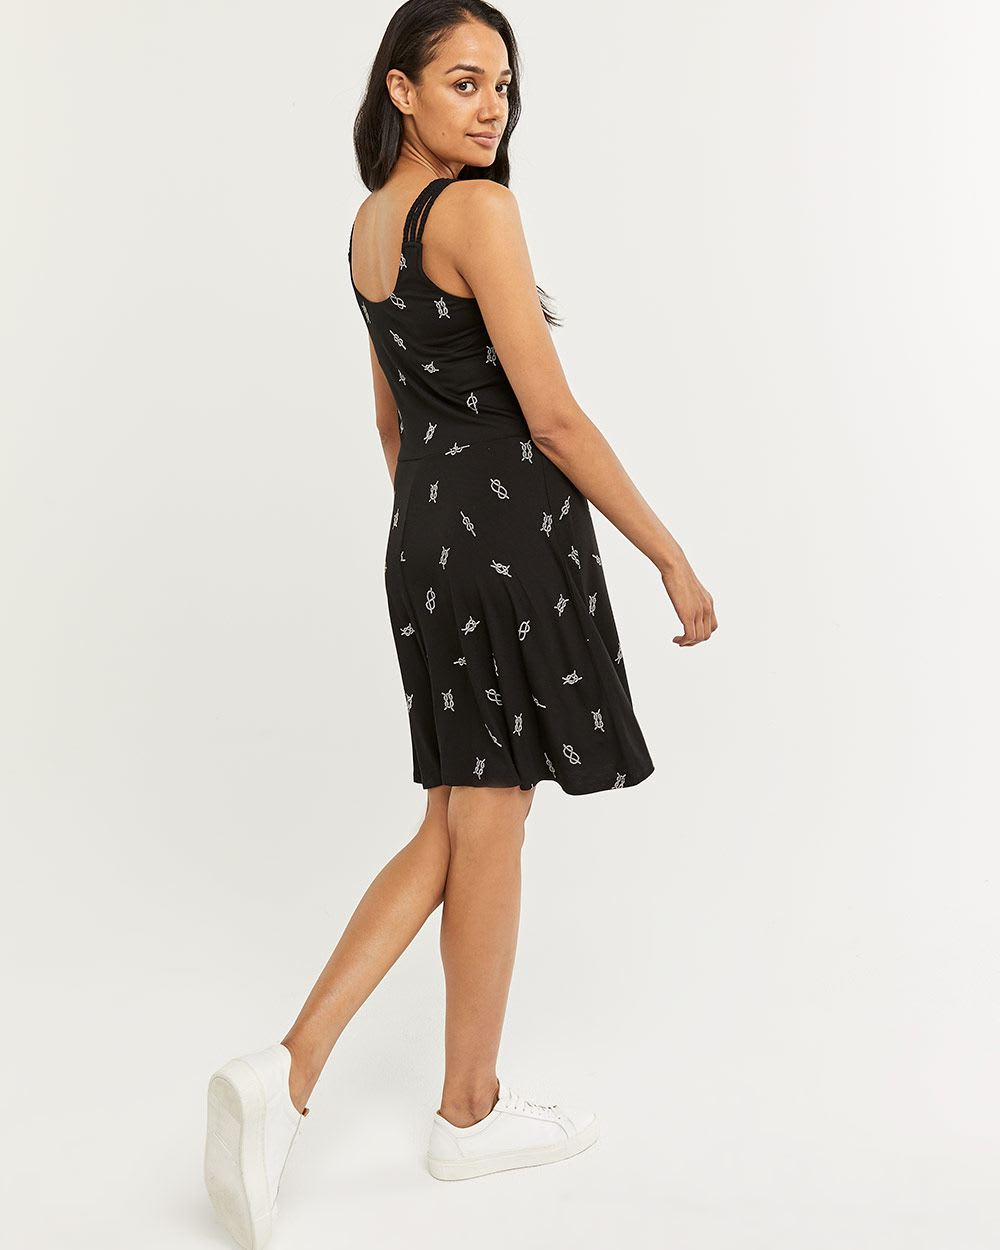 Printed Fit & Flare Dress with Multi Straps